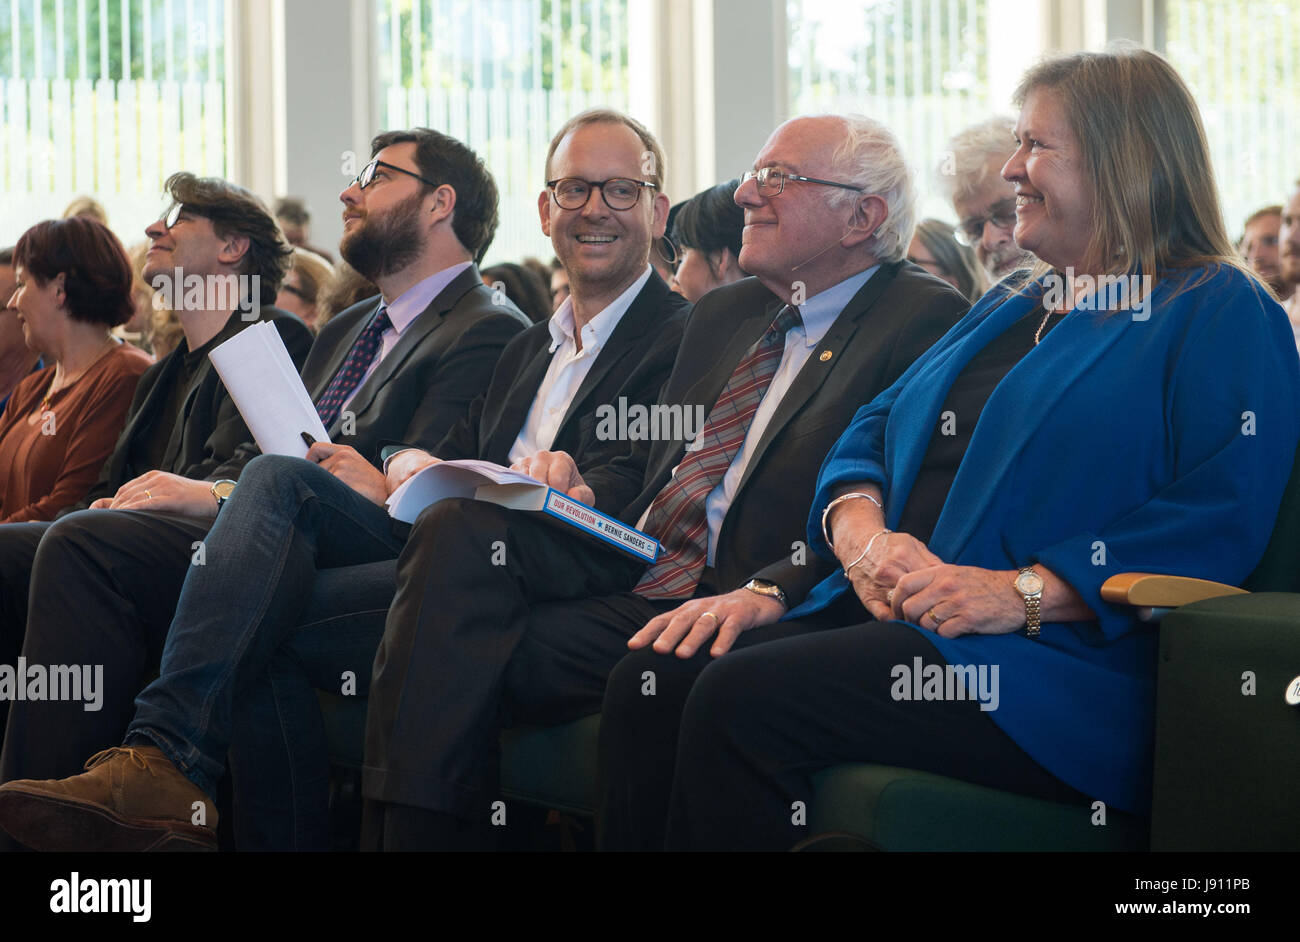 Berlin, Germany. 31st May, 2017. US politician and former presidential candidate Bernie Sanders (2nd from right) - Stock Image